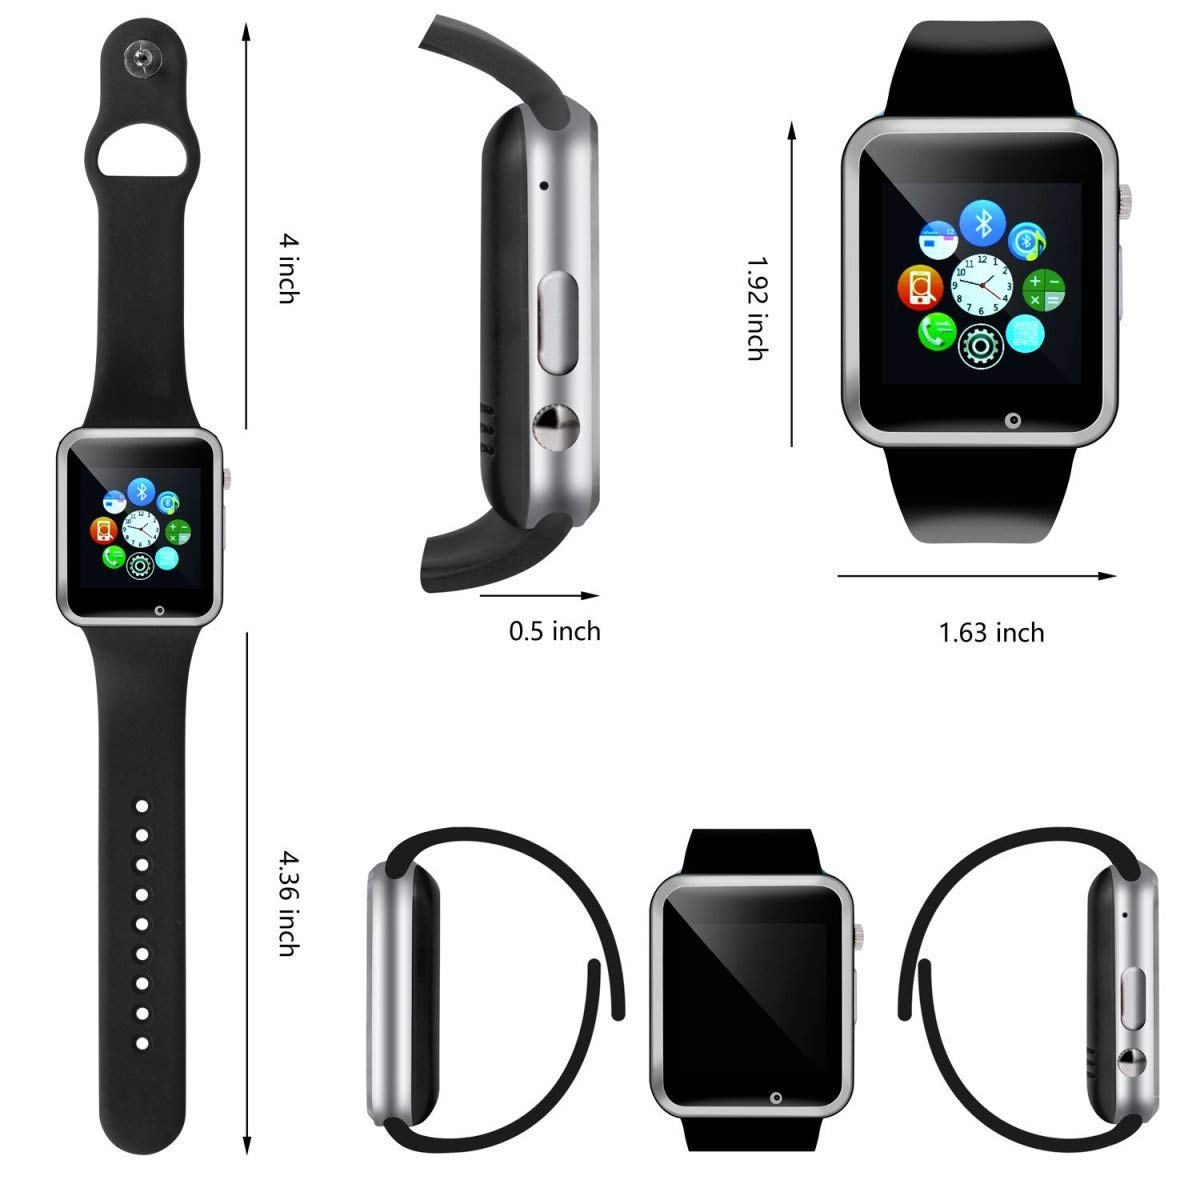 321OU Smart Watch Fitness Tracker Bluetooth Smart Watch Smartwatch Phone Fitness Tracker SIM SD Card Slot Camera Pedometer iPhone iOS Samsung LG Android Men Women Kids (New Black) by 321OU (Image #5)